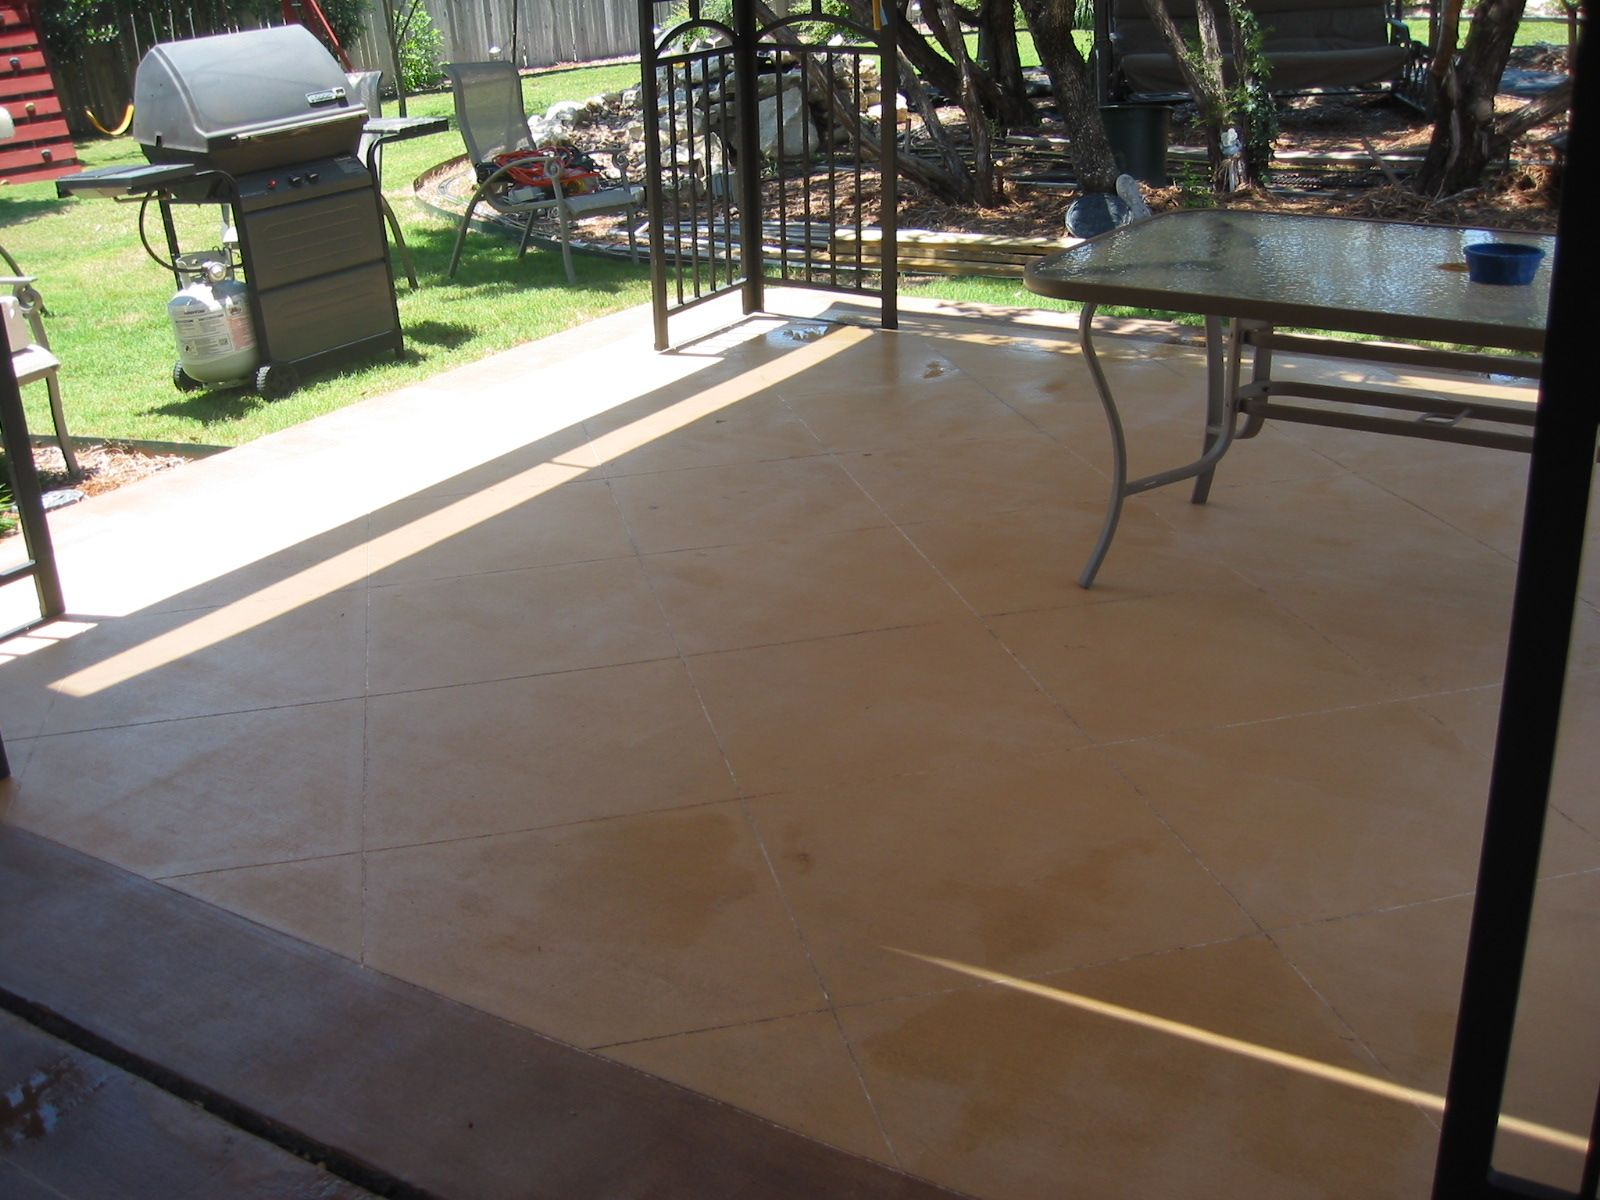 Concrete Stain Concrete Staining Home Depot Neighborhood Buy